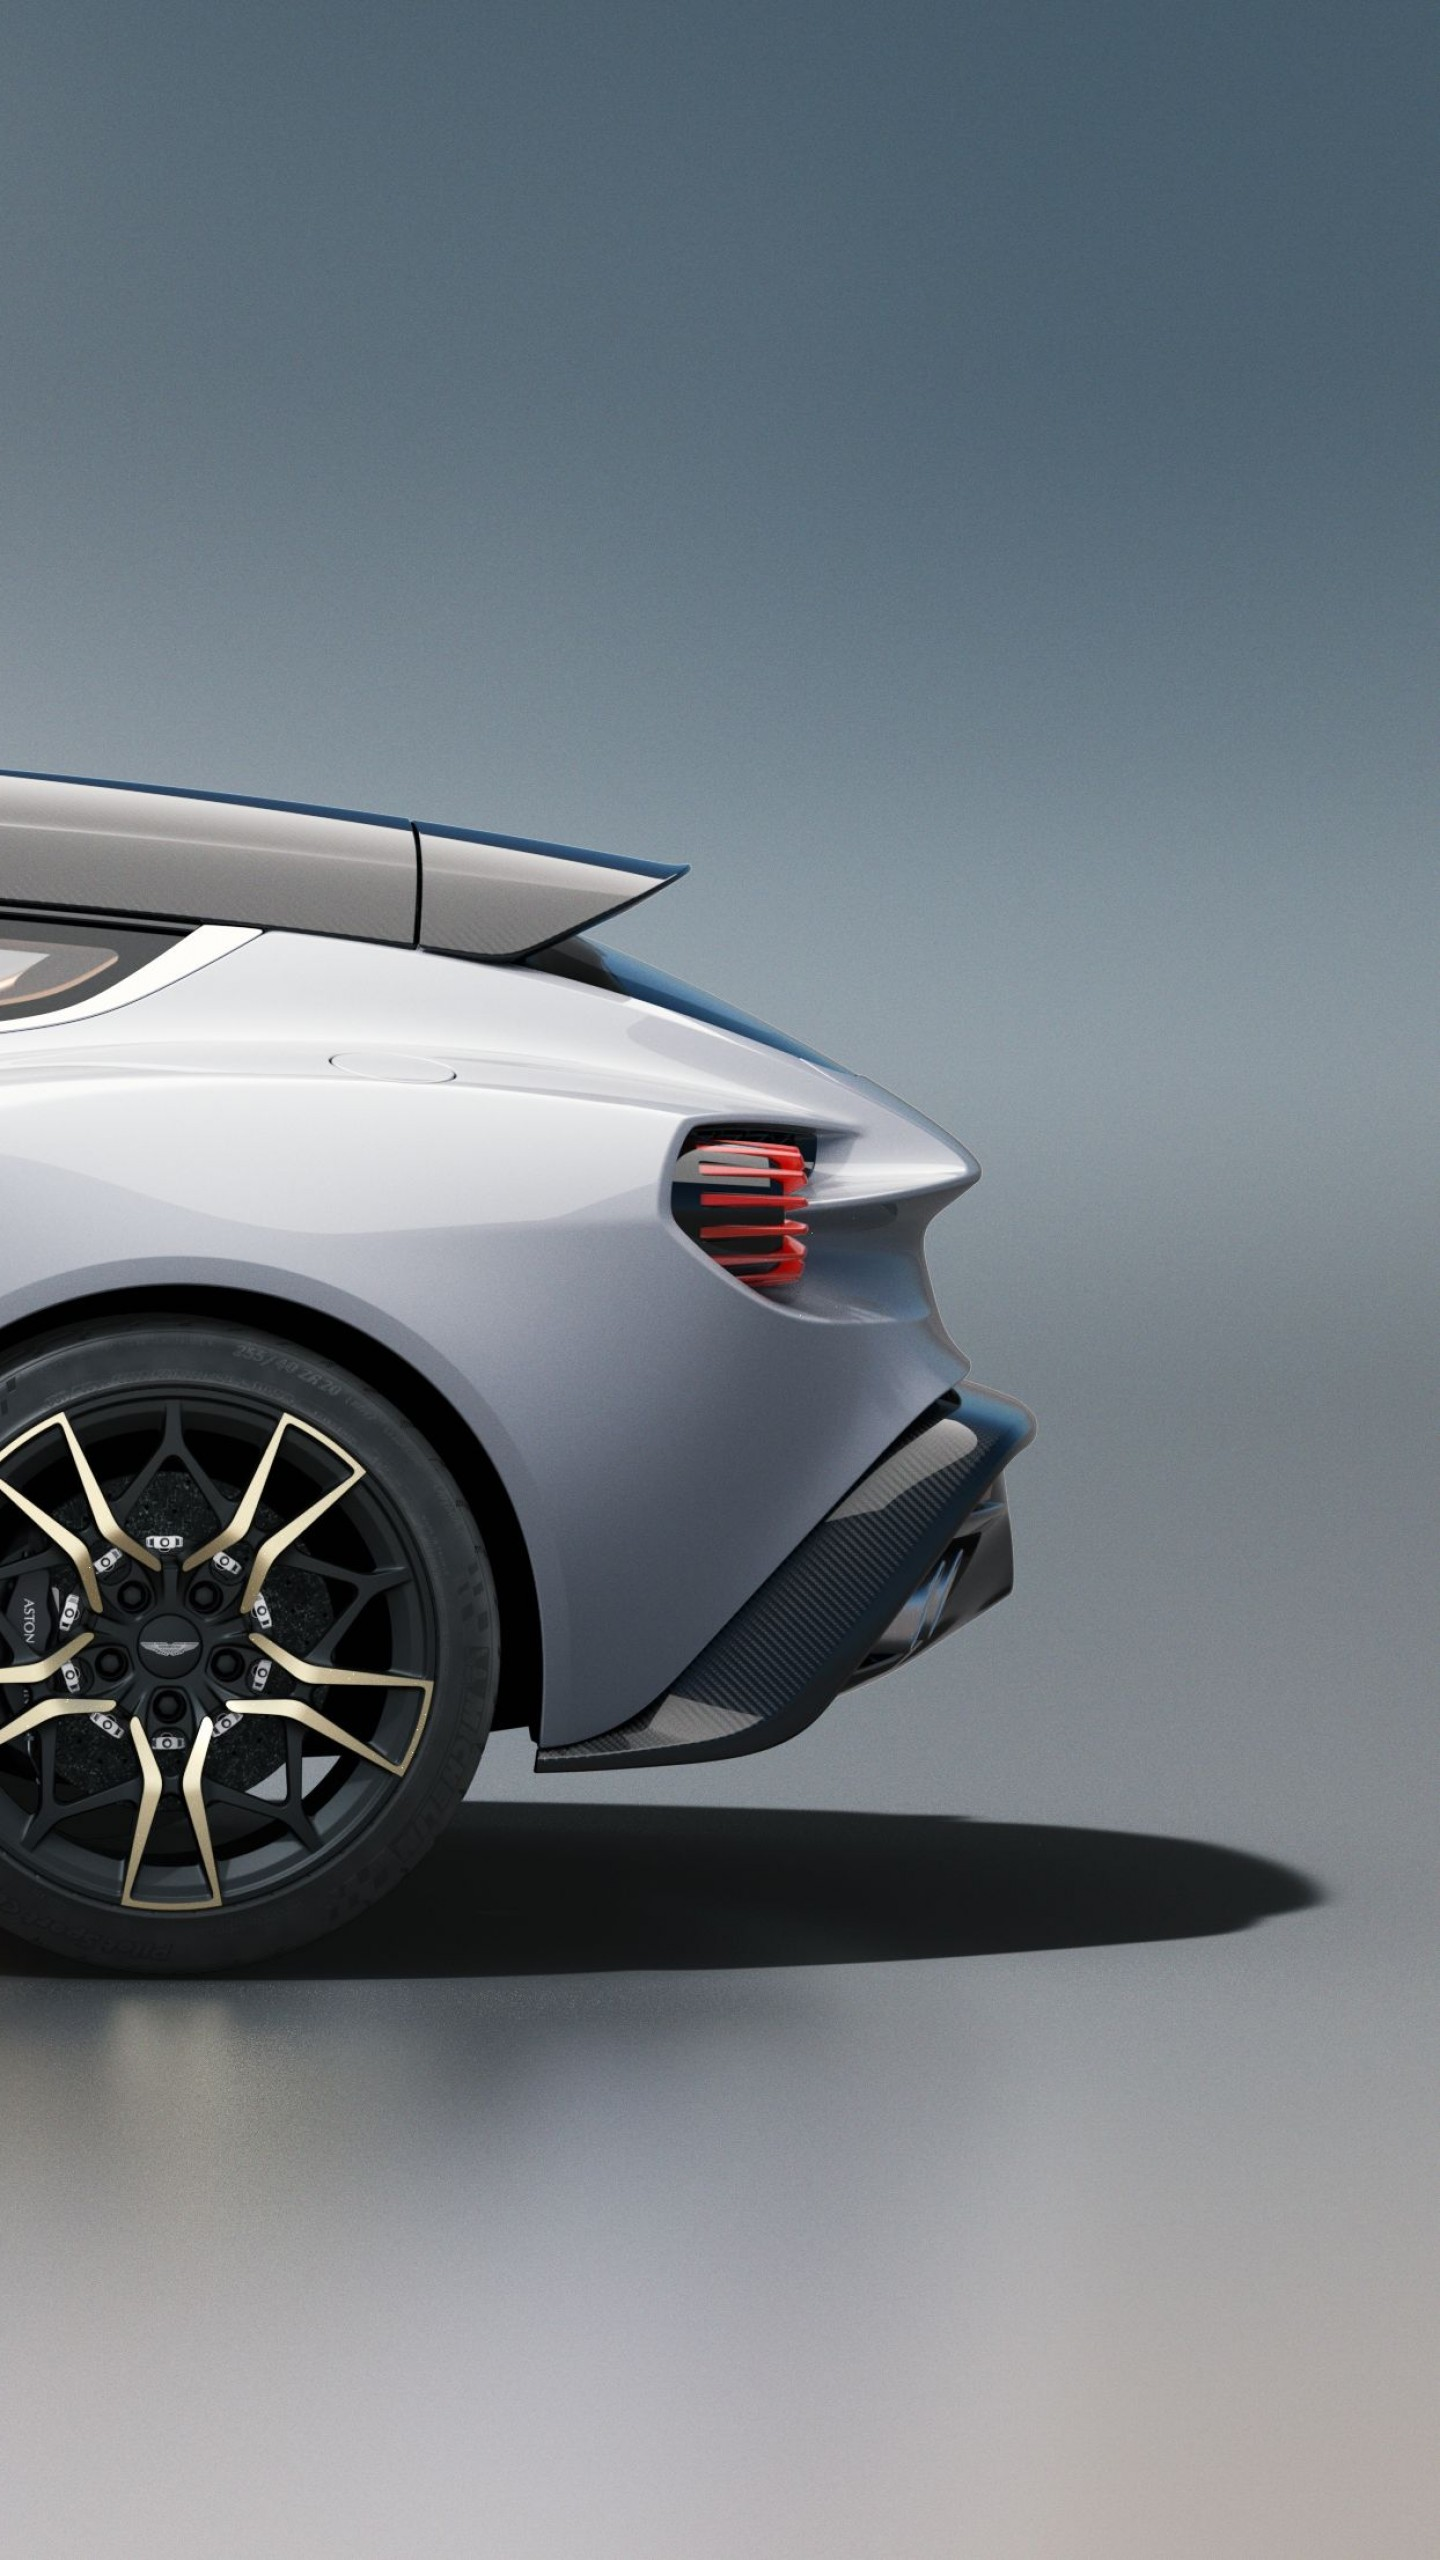 Aston Martin Vanquish Zagato Shooting Brake 1440x2560 Wallpaper Teahub Io